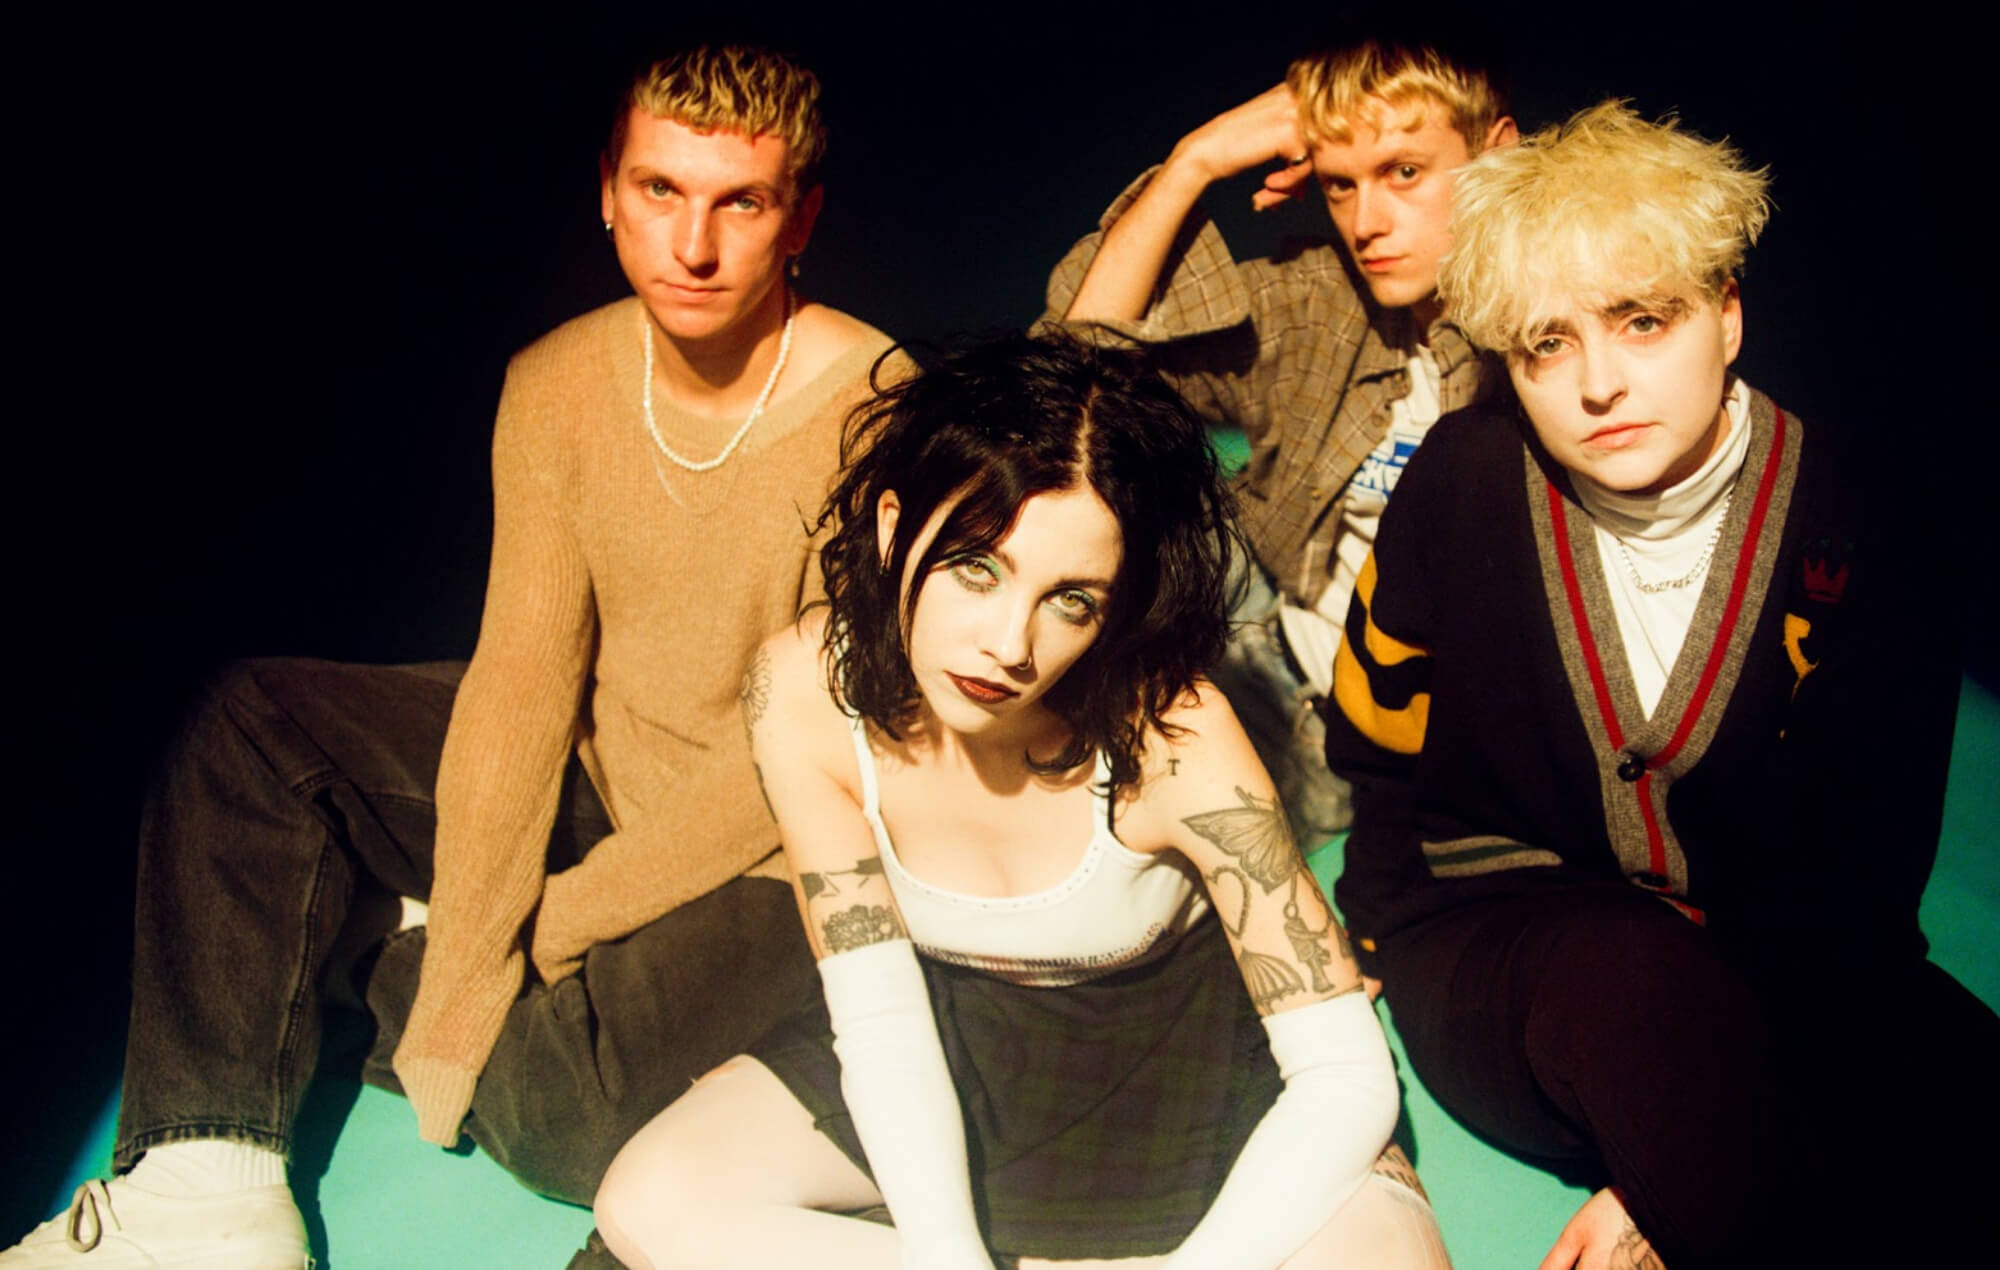 """PALE WAVES RELEASE MUSIC VIDEO FOR NEW SINGLE """"EASY"""""""